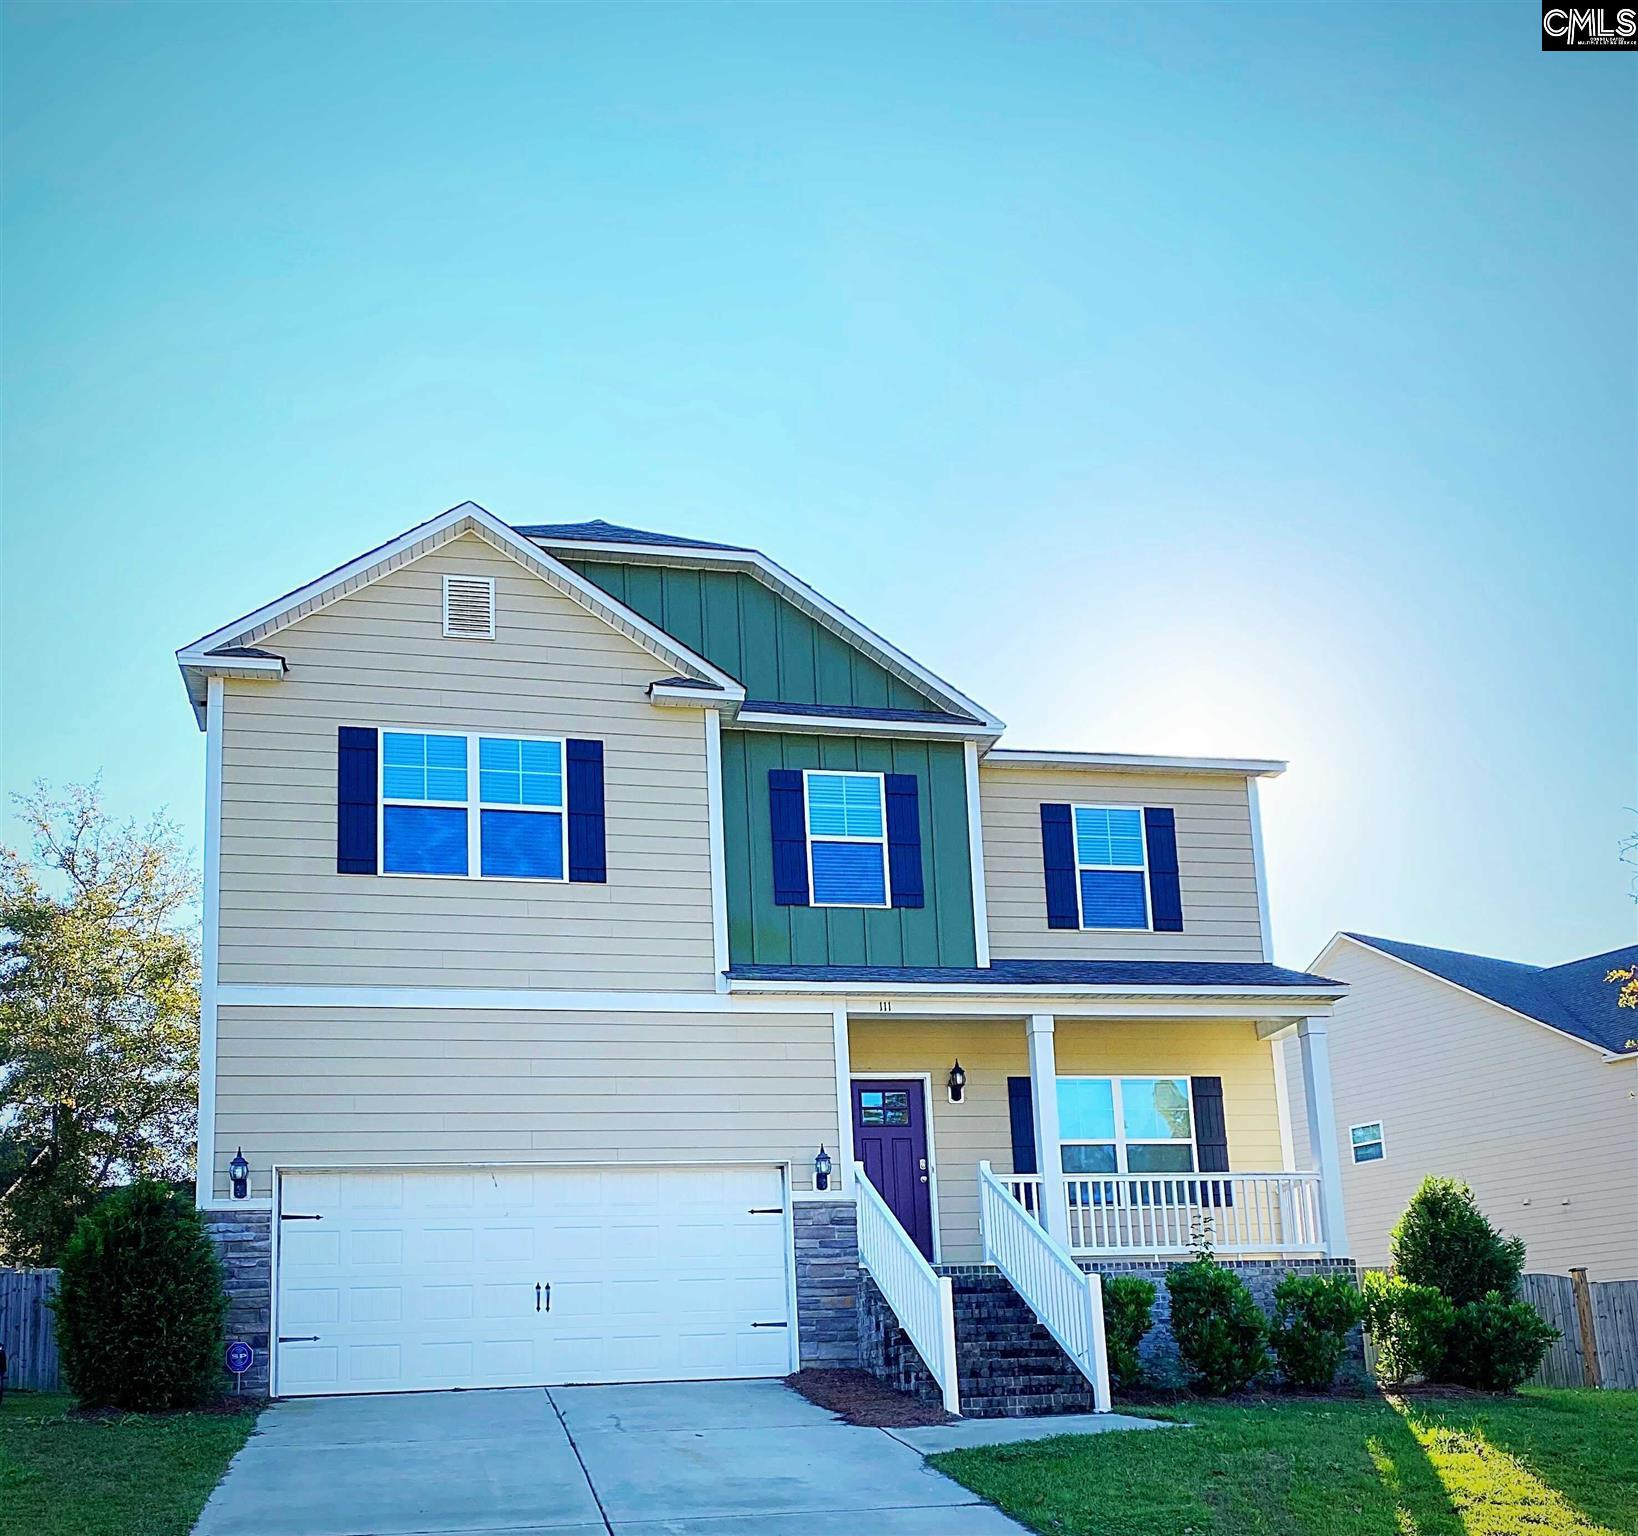 111 Caughman Hill West Columbia, SC 29170